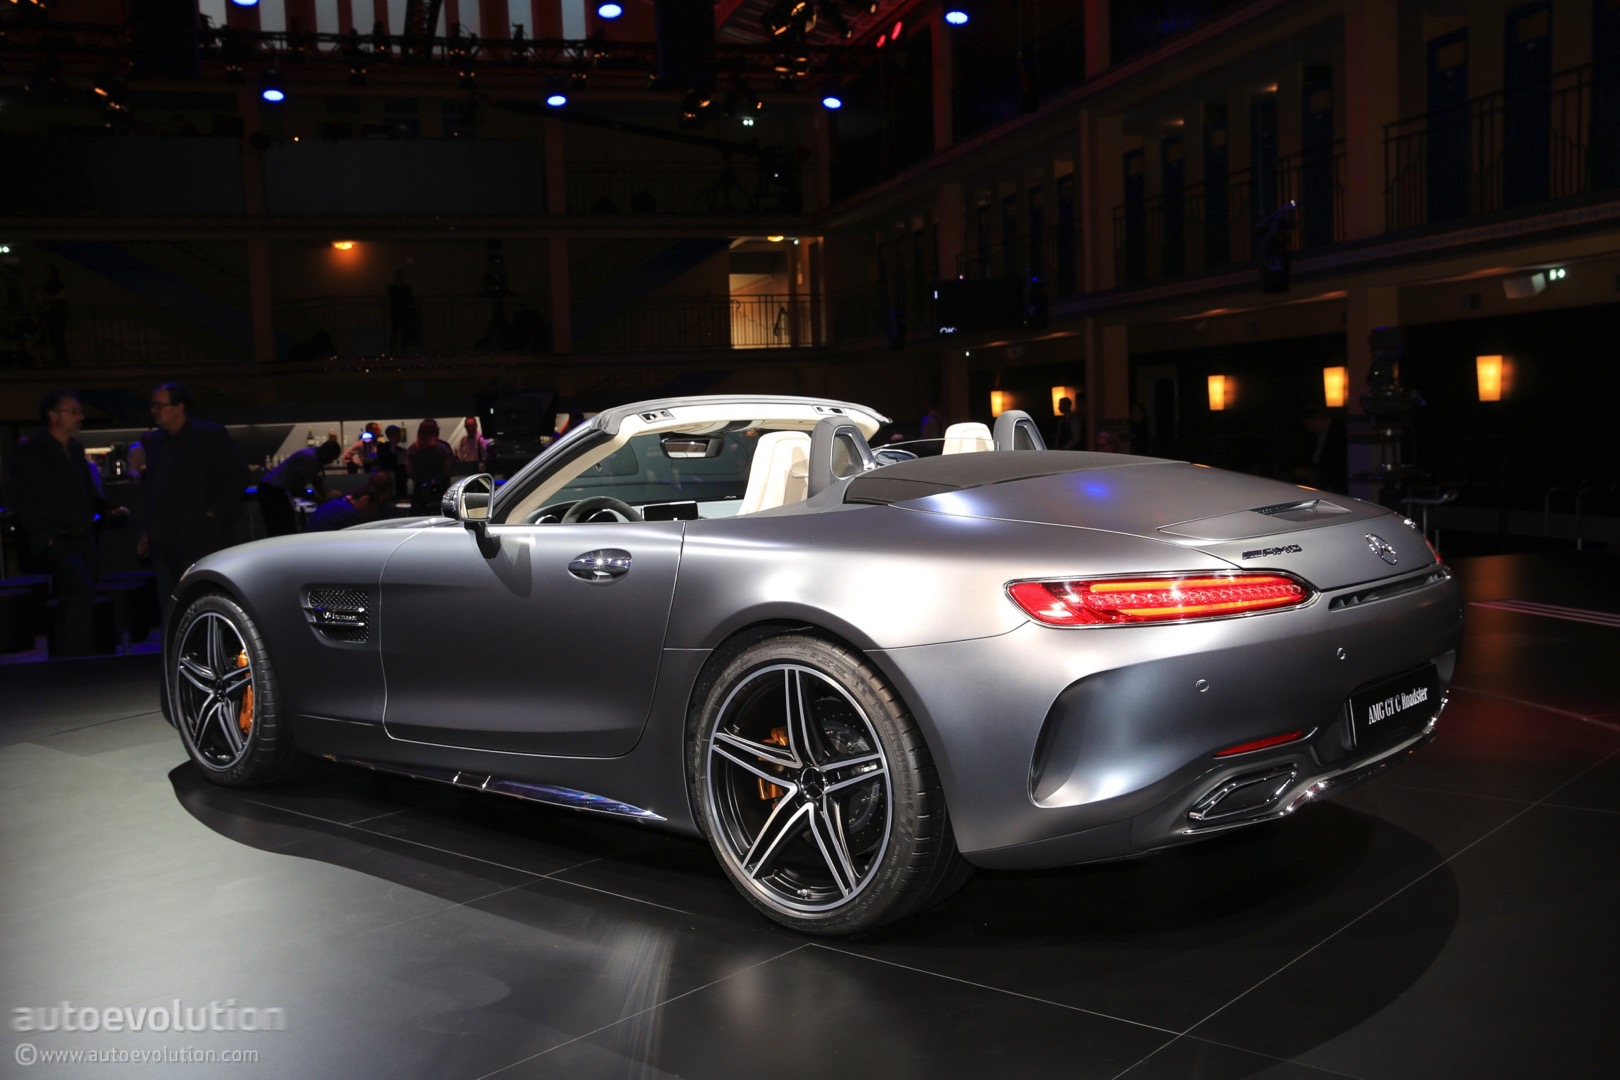 https://s1.cdn.autoevolution.com/images/news/2017-mercedes-amg-gt-c-roadster-shows-up-topless-in-paris-111684_1.jpg